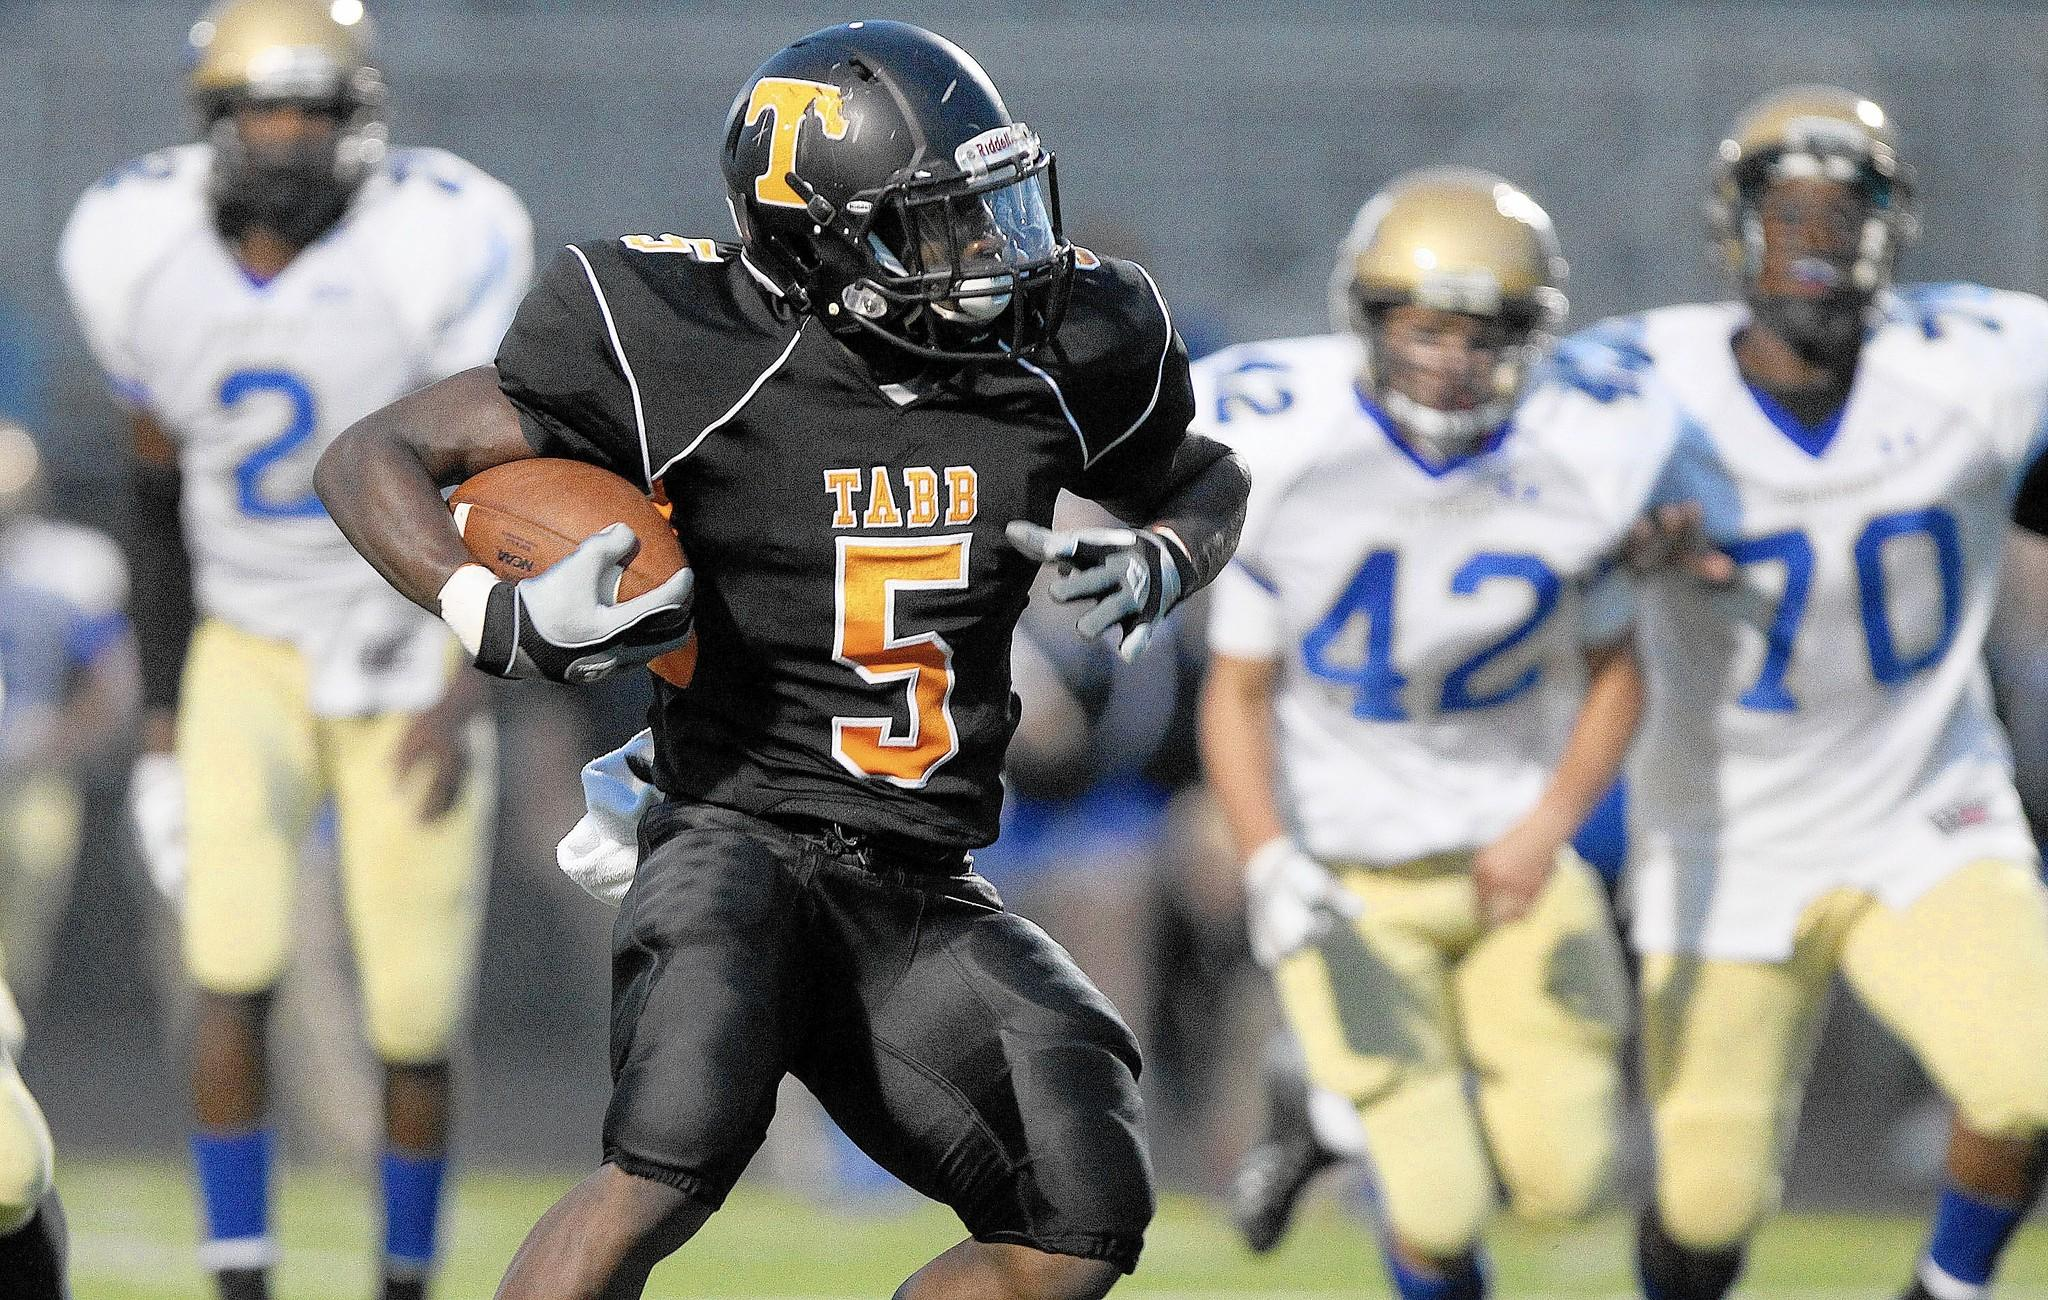 Antwuan Hicks of Tabb gets away from the Smithfield defense for a first quarter touchdown Thursday at Bailey Field.